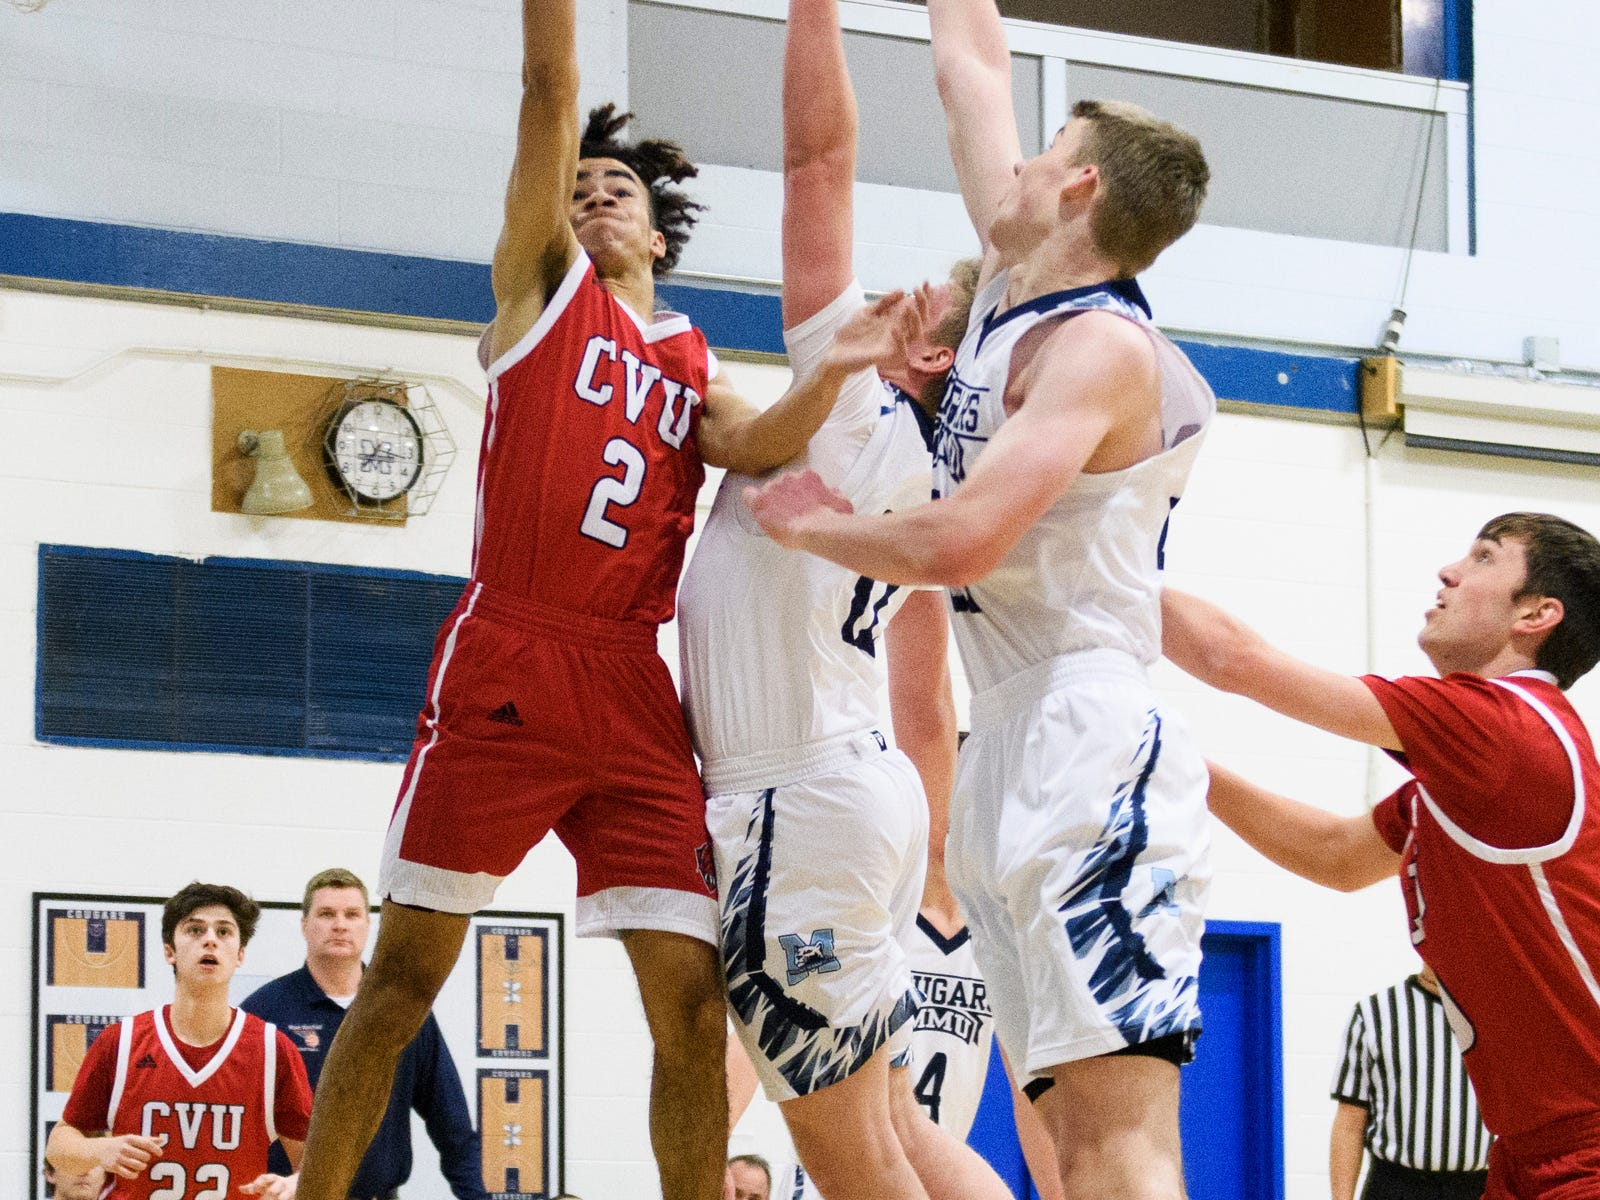 CVU's Noah Martin (2) leaps for a lay up during the boys basketball game between the Champlain Valley Union Redhawks and the Mount Mansfield Cougars at MMU High School on Tuesday night January 22, 2019 in Jericho.